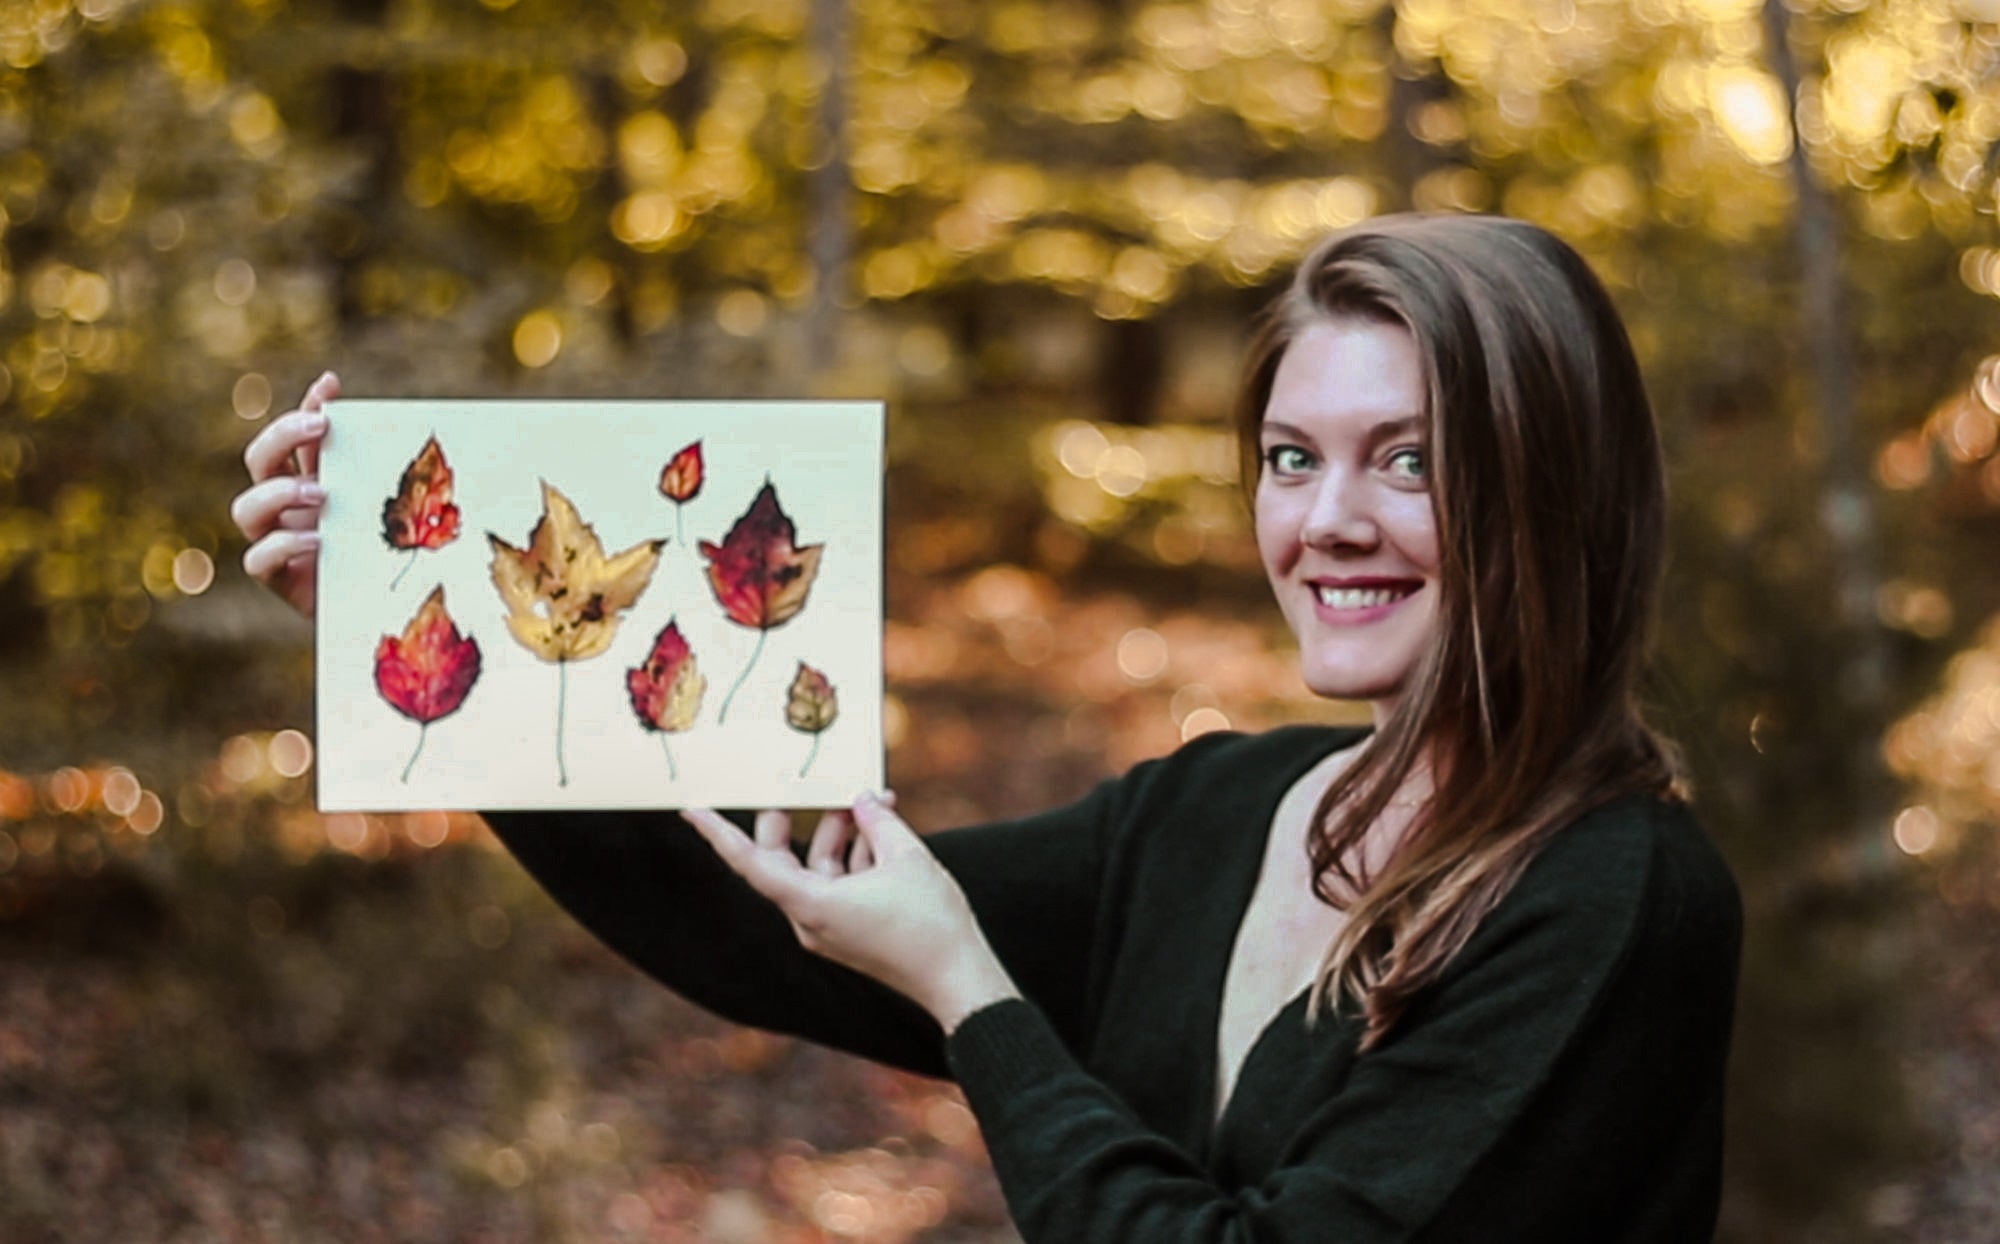 Courtney Hopkins holding up a painting of fall leaves